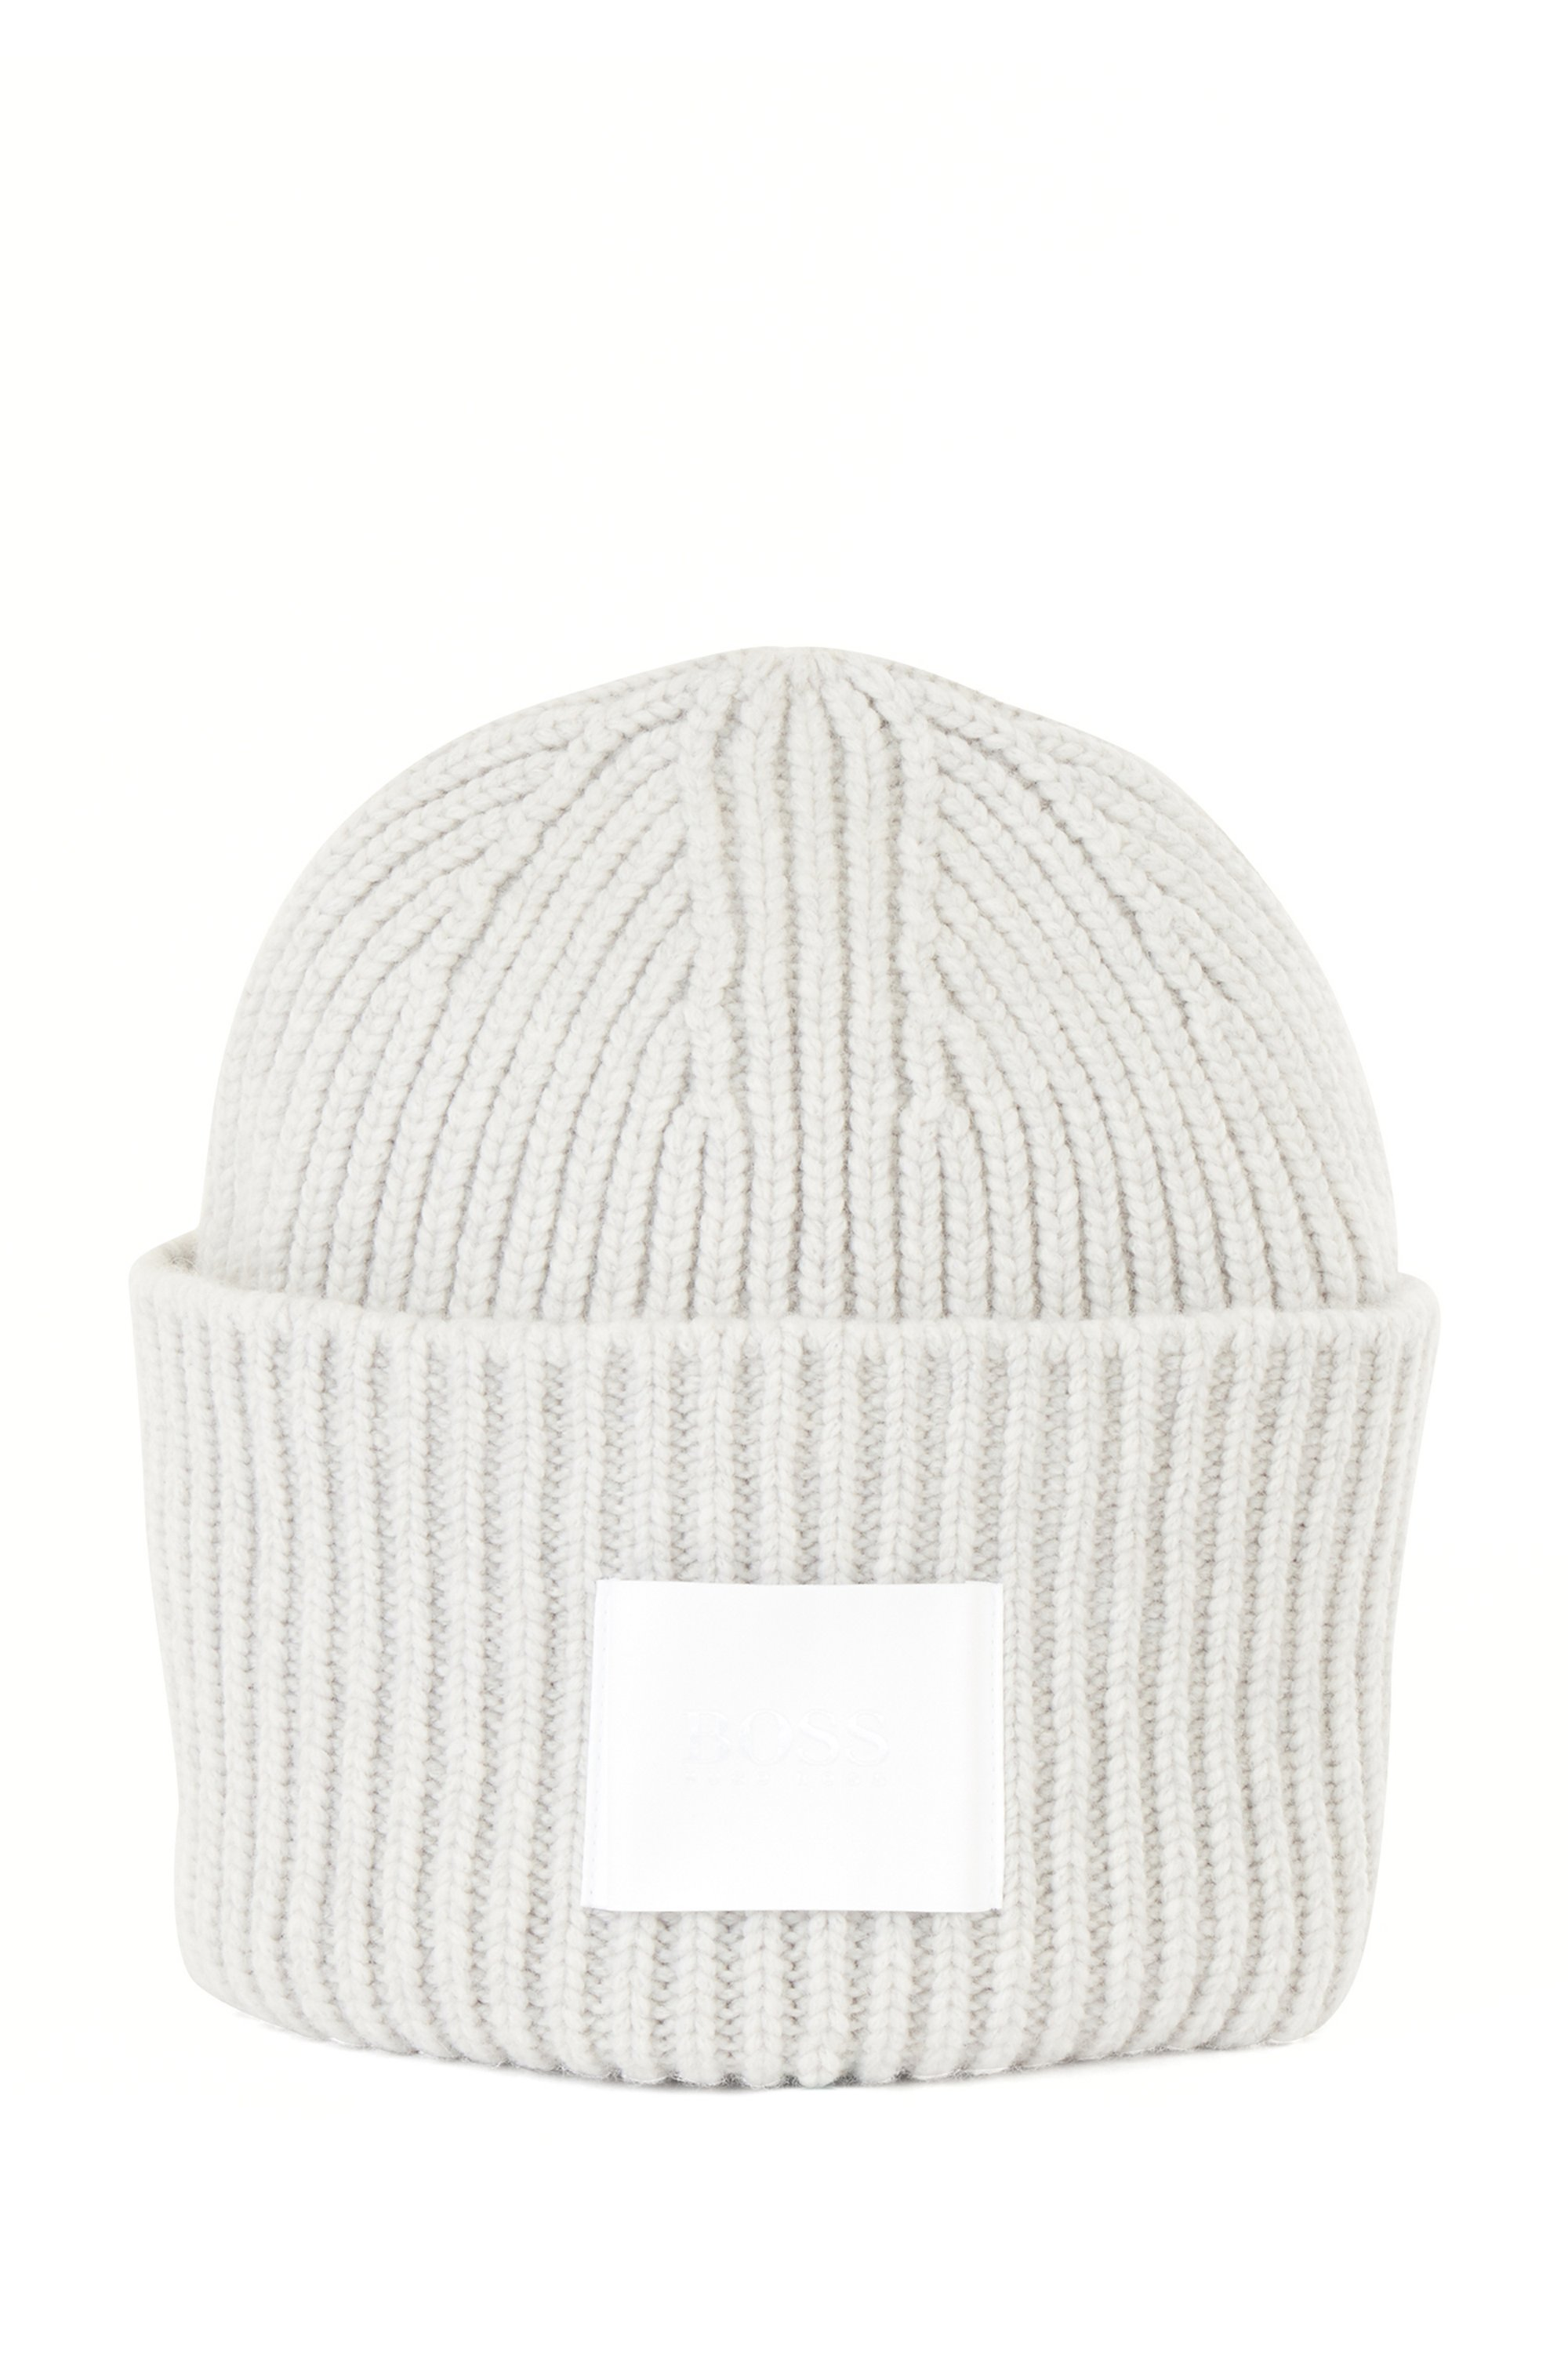 Ribbed beanie hat in virgin wool and cashmere, Silver